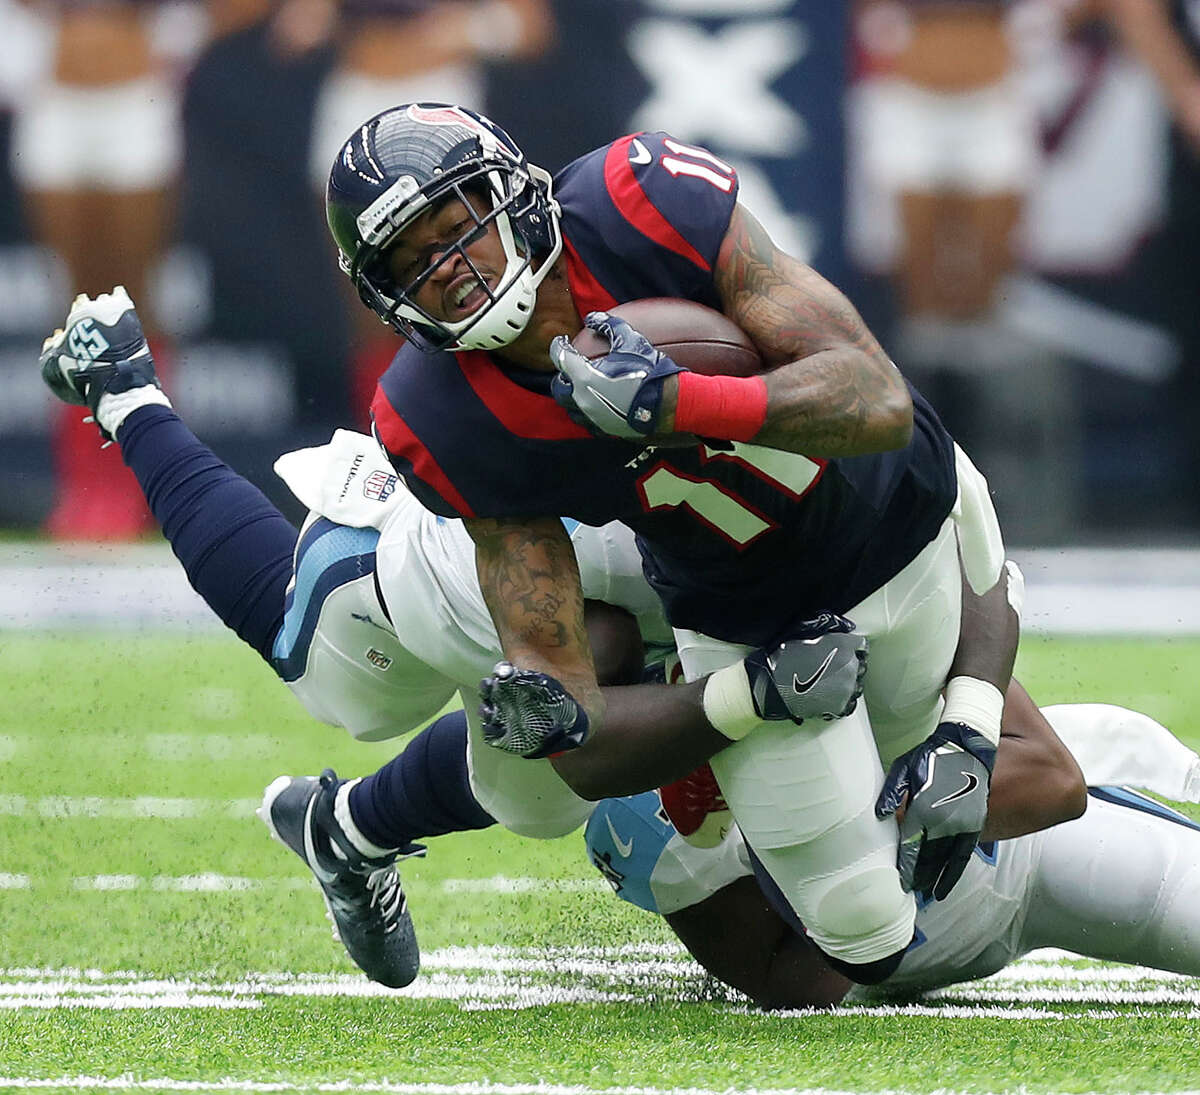 Houston Texans wide receiver Jaelen Strong (11) is brought down by Tennessee Titans linebacker Sean Spence (55) during the second quarter of an NFL football game at NRG Stadium, Sunday, Oct. 2, 2016 in Houston.